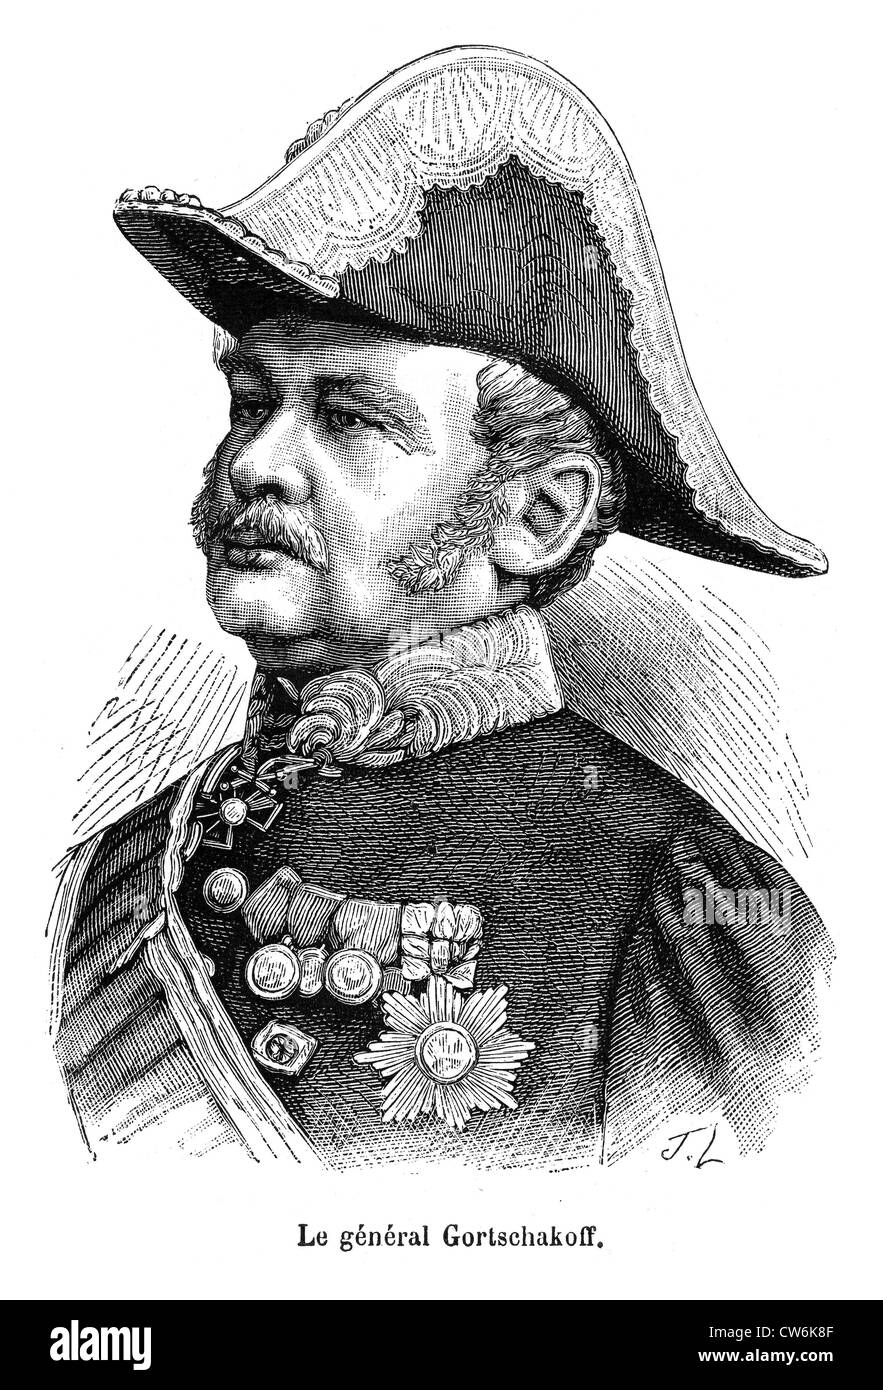 General Gortschakoff Mikhail Dmitrievitch - Stock Image